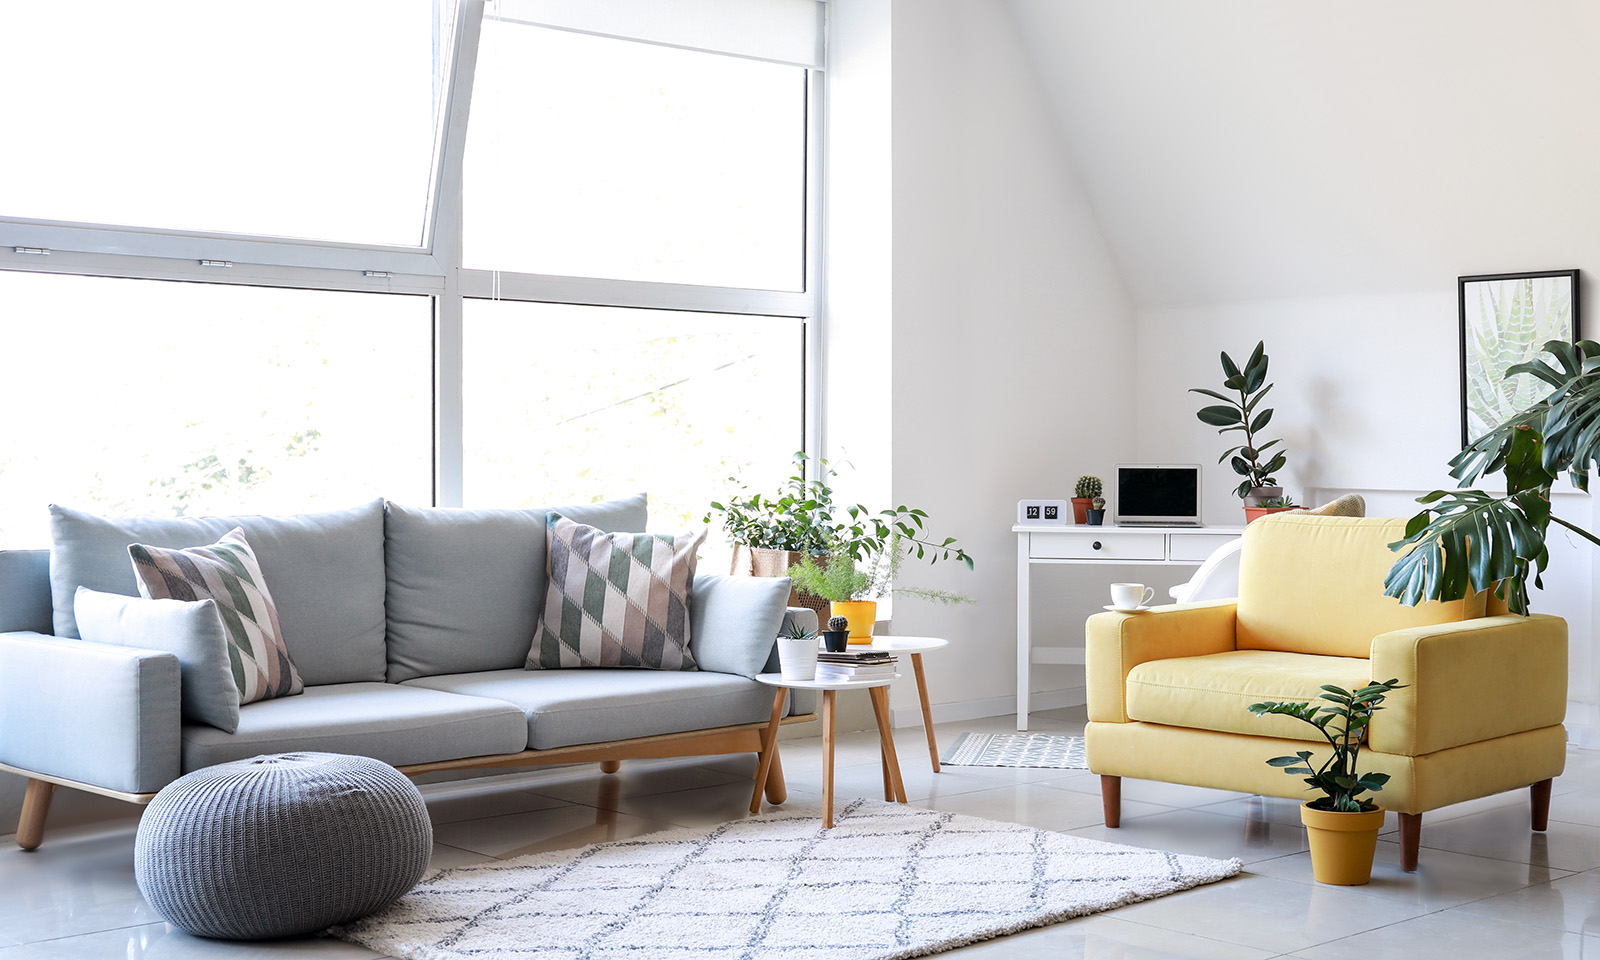 interior-design-aspects-you-should-consider-beautiful-modern-living-room